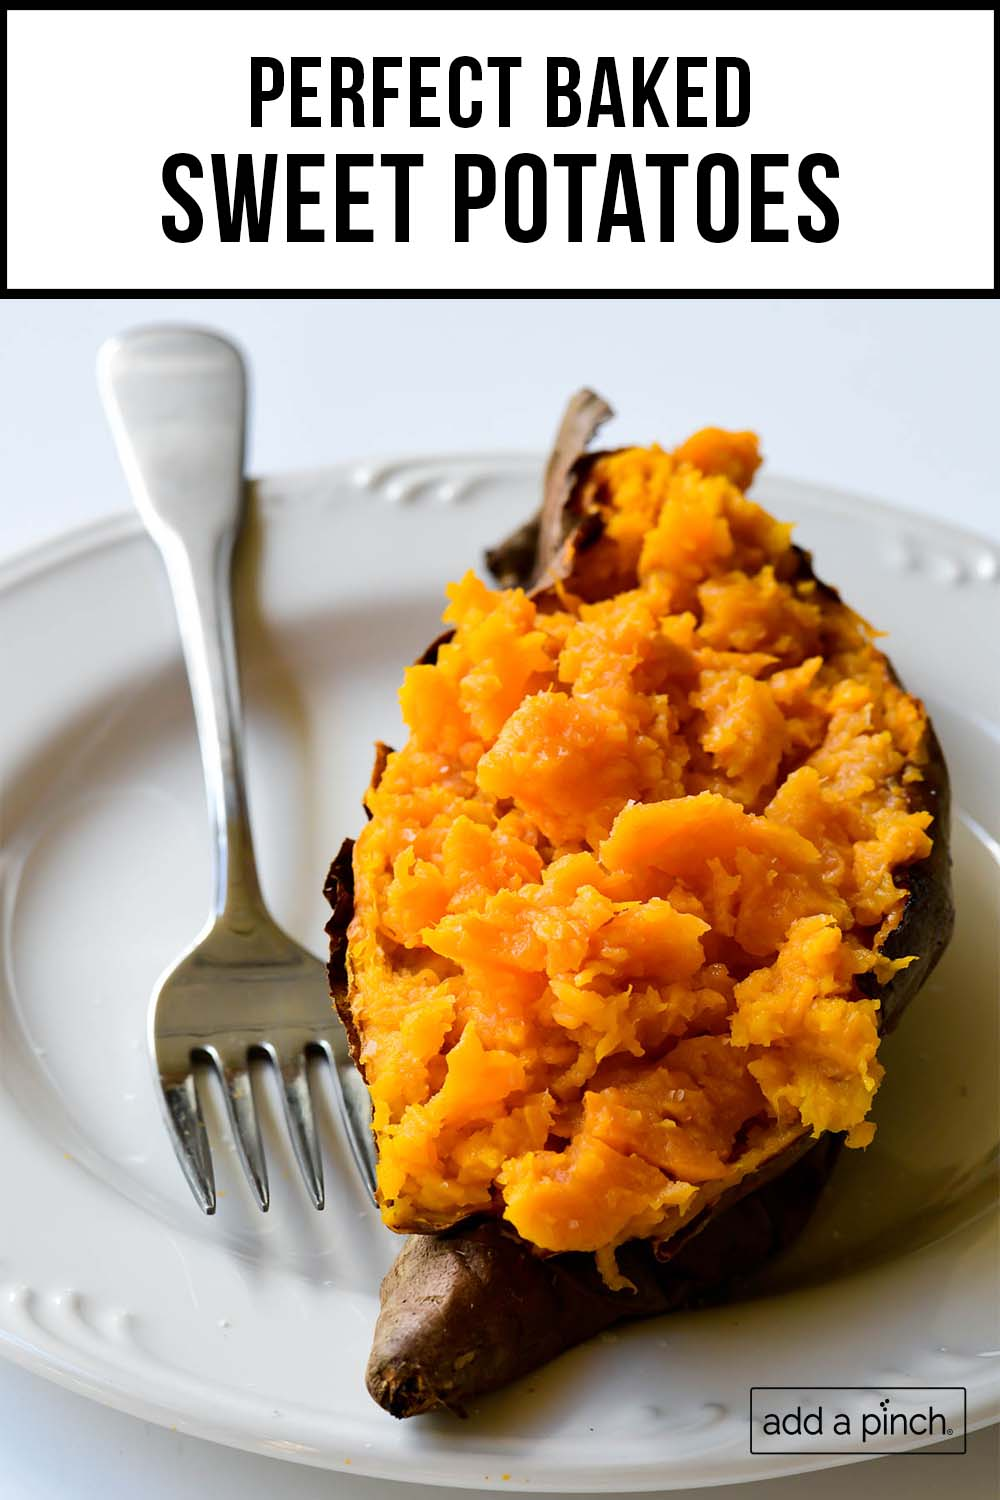 Photograph of baked sweet potato on a white plate with the text perfect baked sweet potatoes overlay.